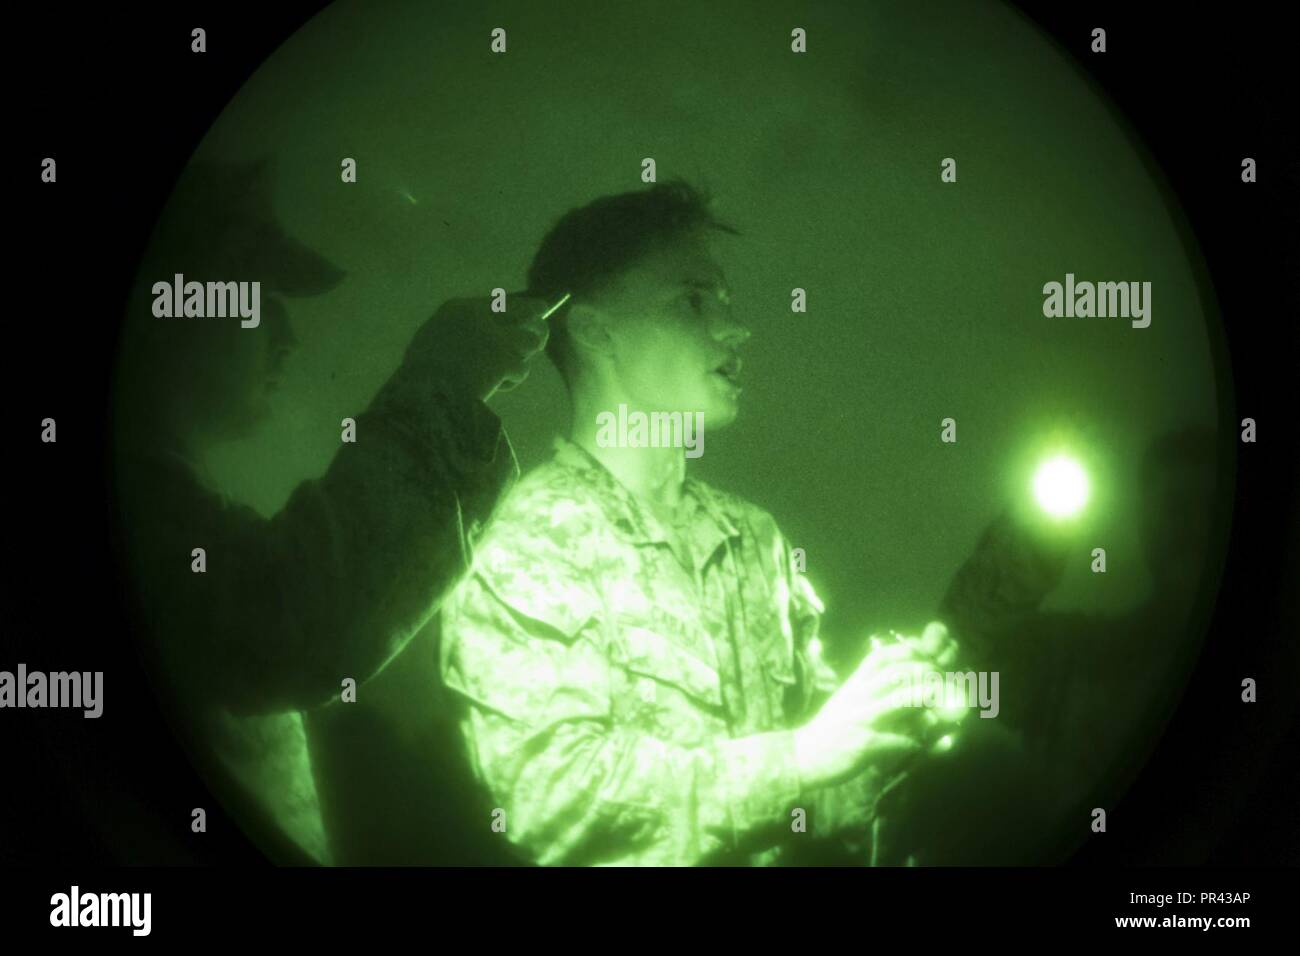 U.S. Marine Corps Sgt. Pawel Cabaj, right, bust instructor, 2nd Marine Division, gives a class on PVS-14 night vision device during Career Orientated Training for Midshipmen (CORTRAMID) Marine Week, Camp Lejeune, N.C., July 25, 2017. The purpose of CORTRAMID is to expose students to opportunities in the Fleet Marine Forces and generate an interest in a Marine Corps commission. Stock Photo